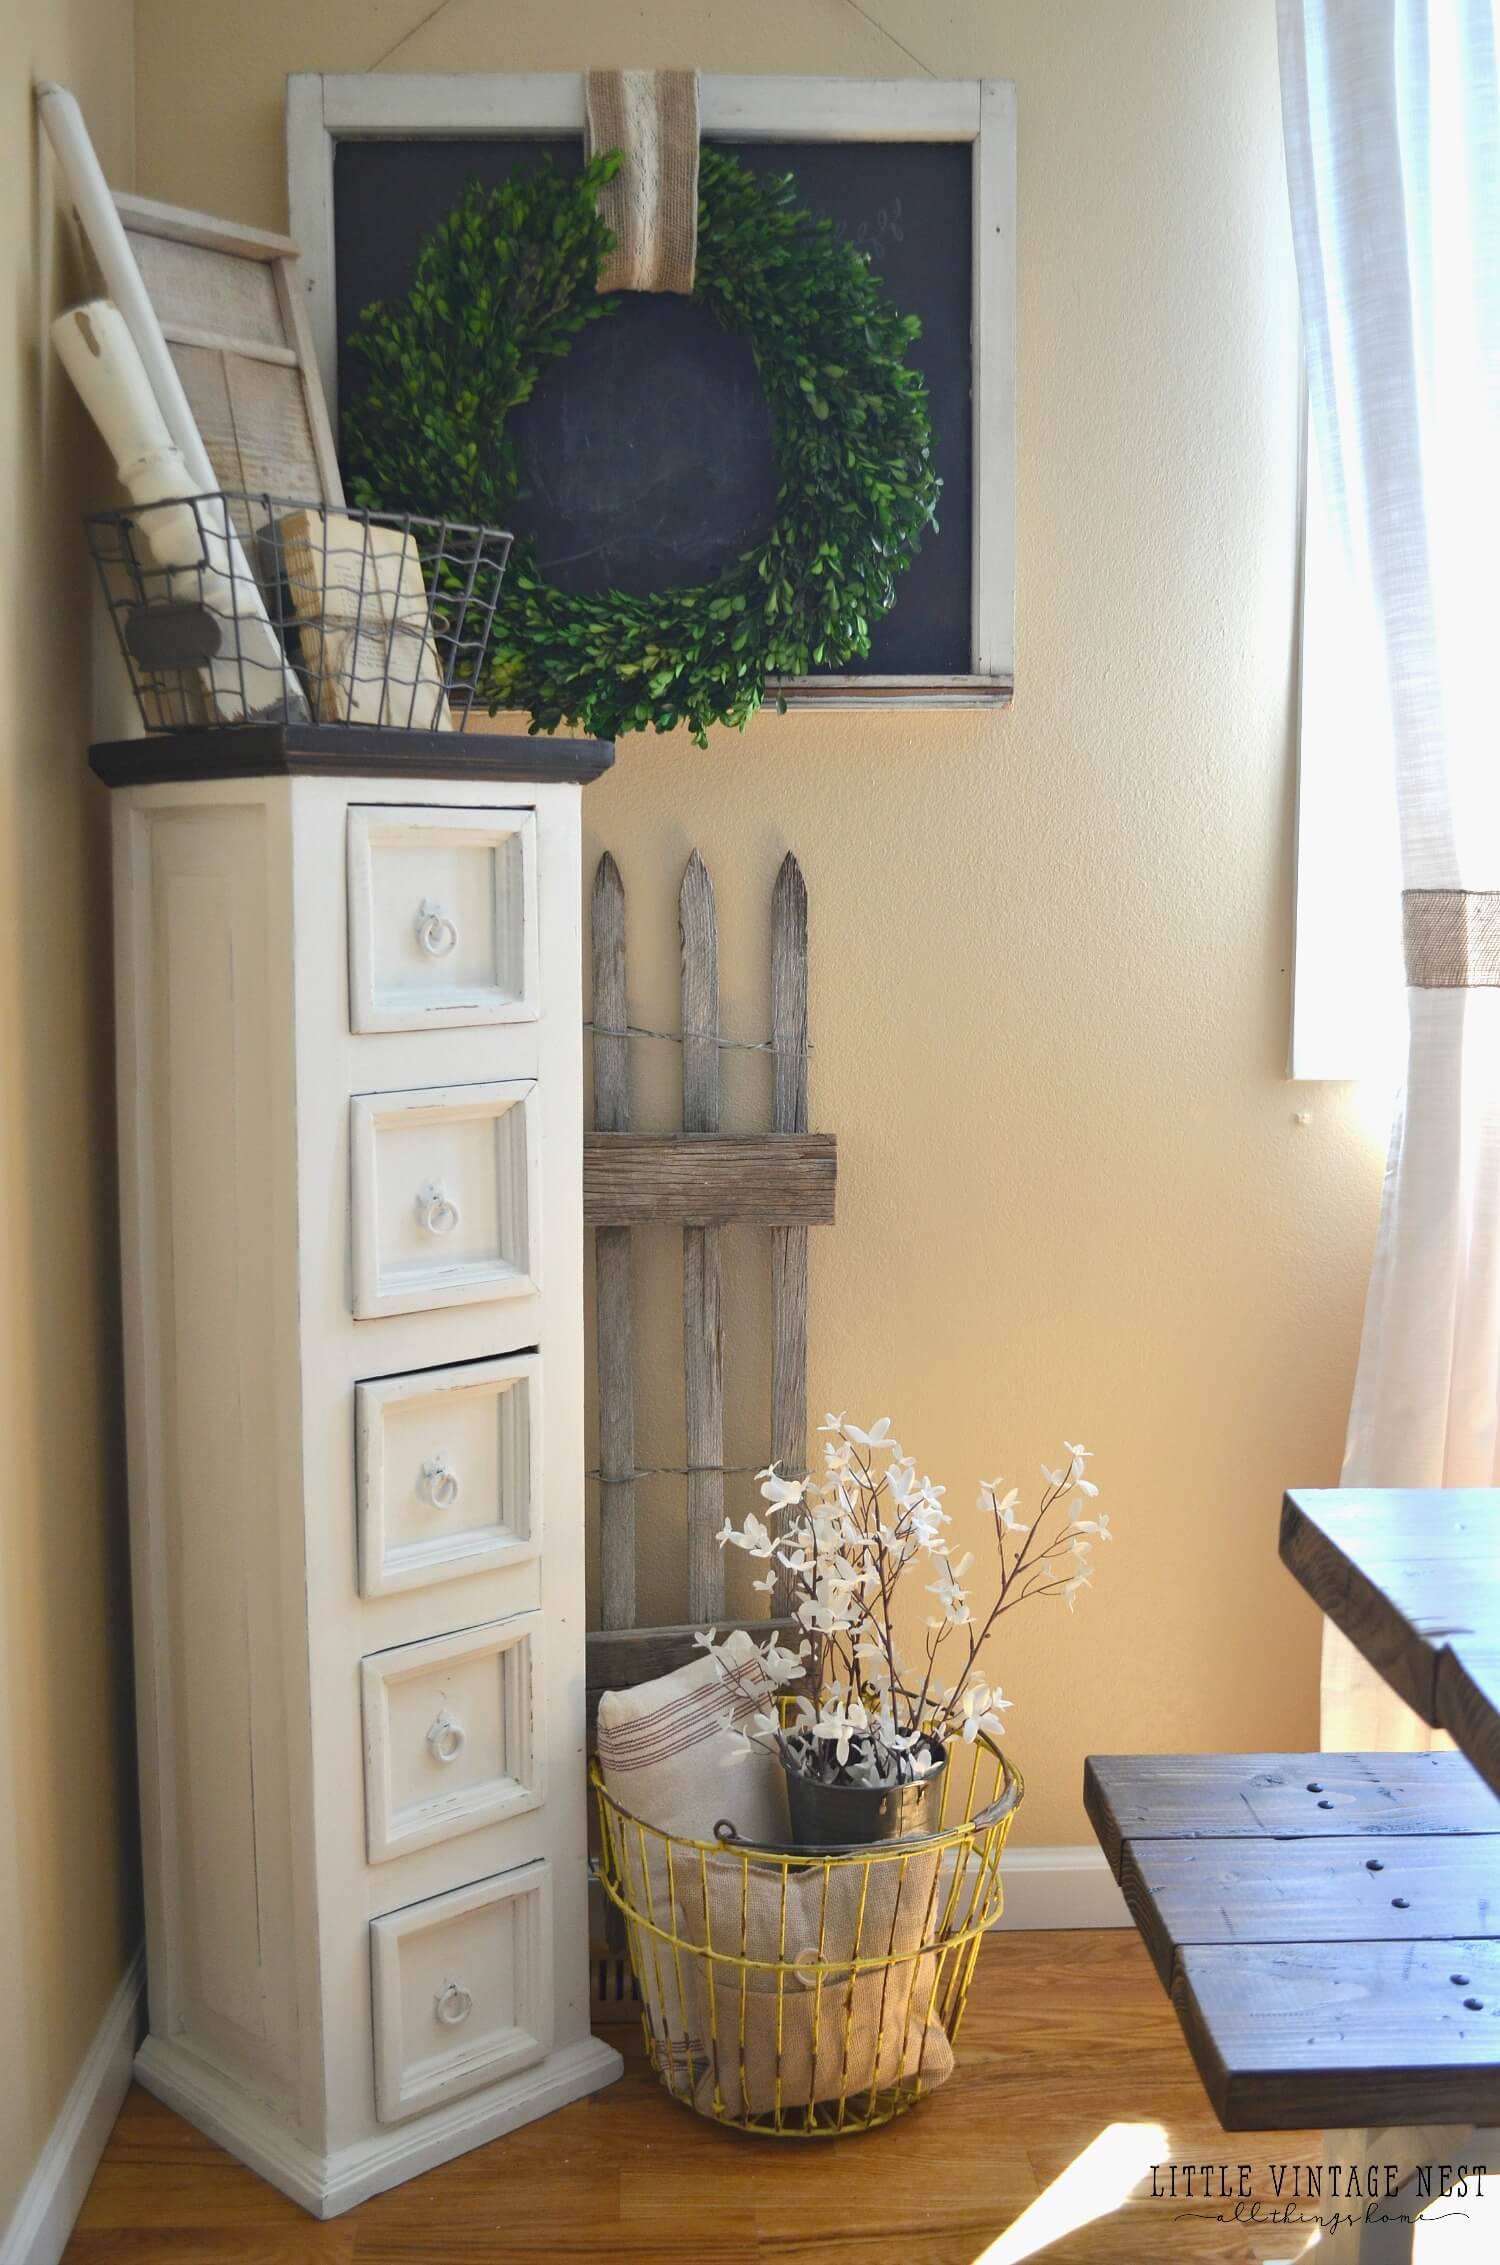 Repurpose a Cabinet, Transform a Corne